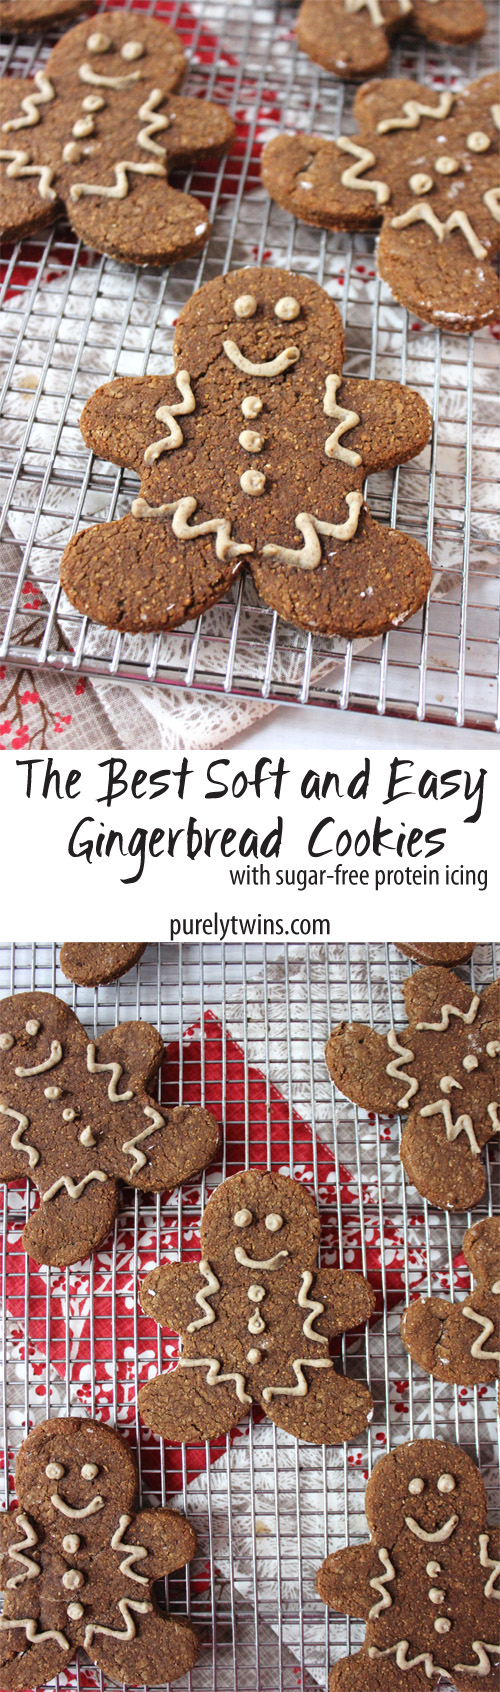 Secretly healthy and soft Gingerbread Man Cookies Recipe ~ You'll love these easy, delicious gingerbread men loaded with warm winter spices and sugar-free protein icing. These cookies are gluten-free grain-free dairy-free and egg-free! Perfect to enjoy this holiday season. || purelytwins.com